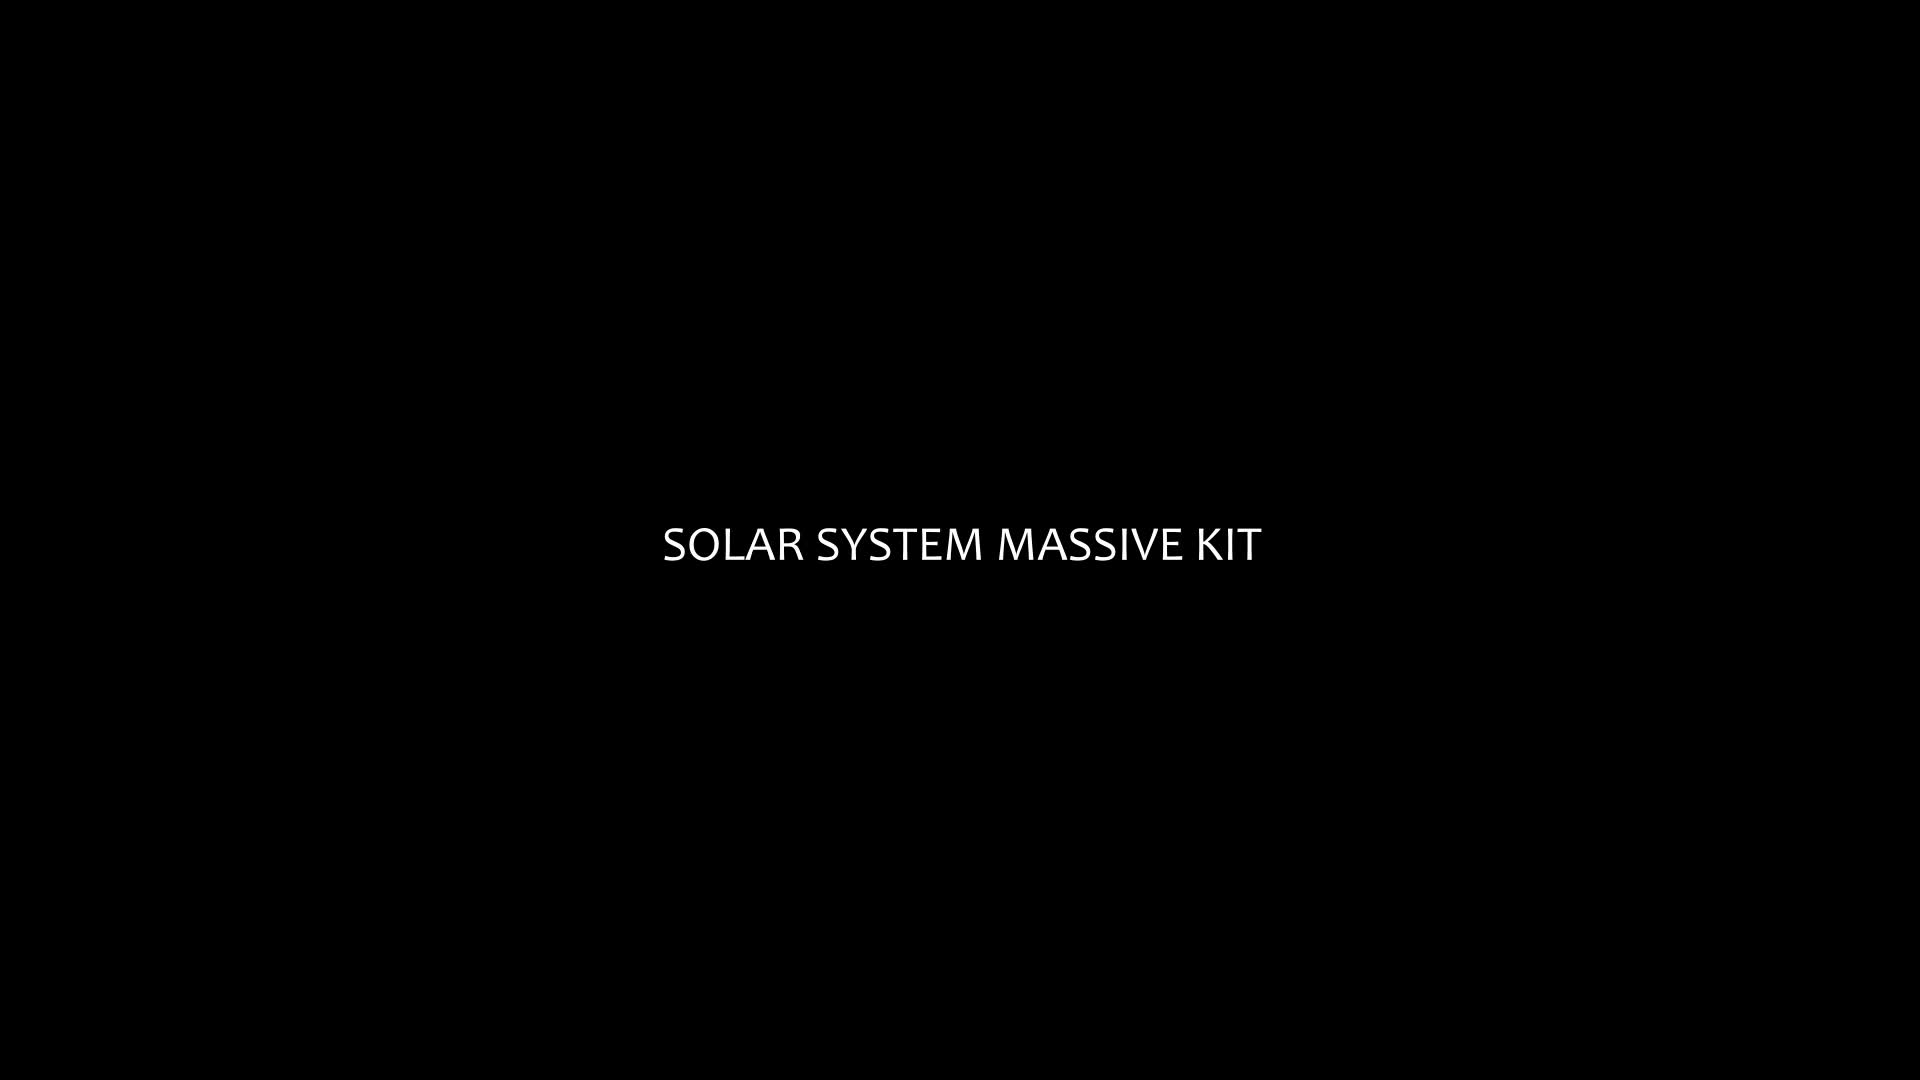 Solar System Massive Kit - Download Videohive 20502362